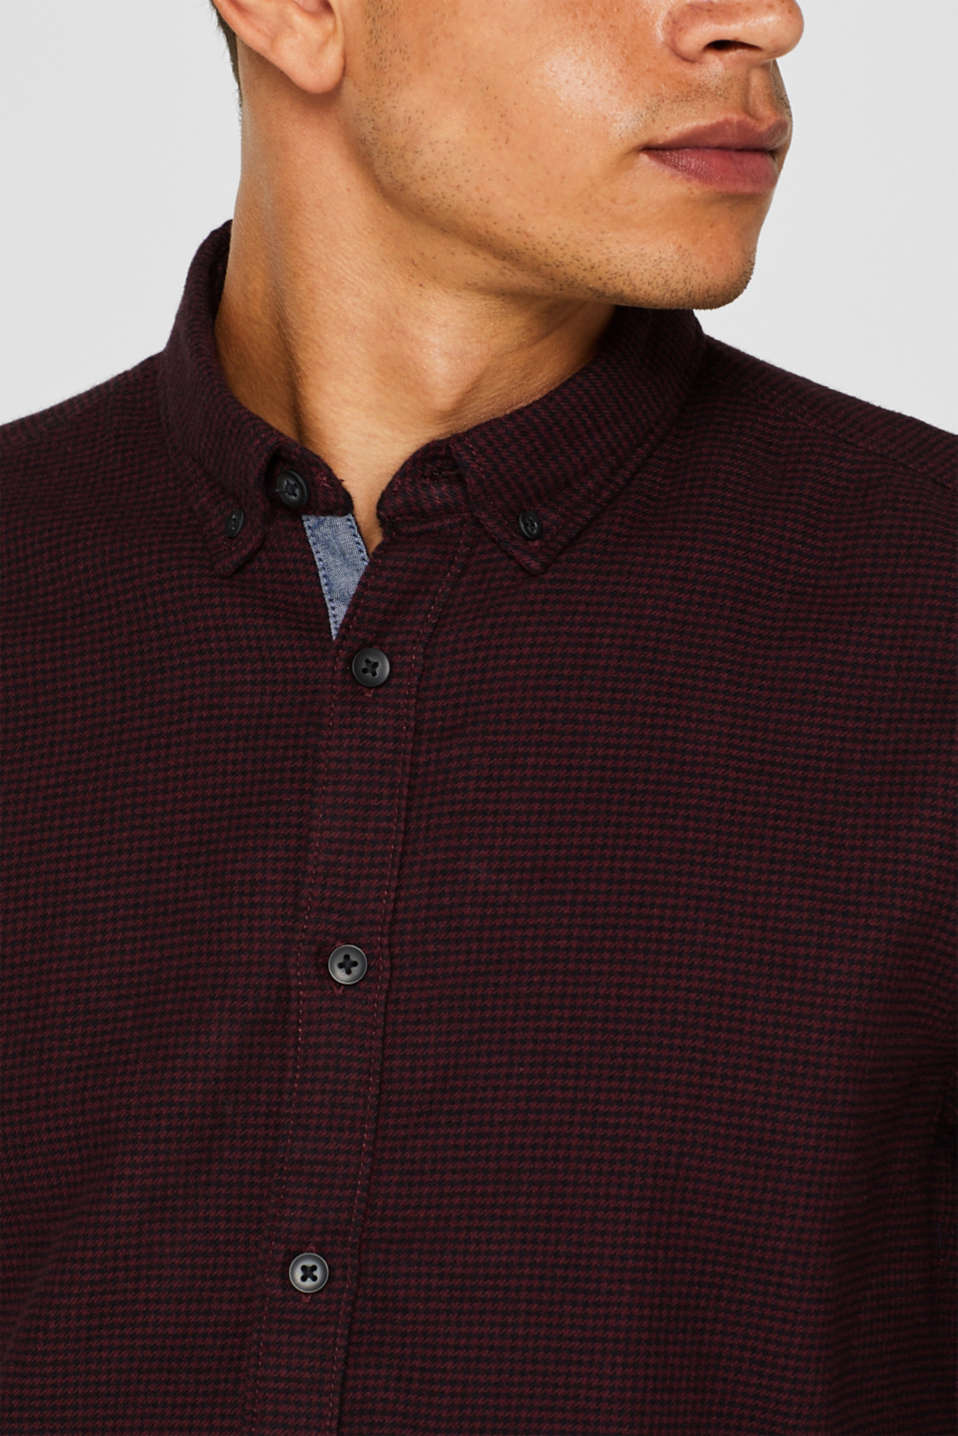 Shirts woven Slim fit, BORDEAUX RED, detail image number 5